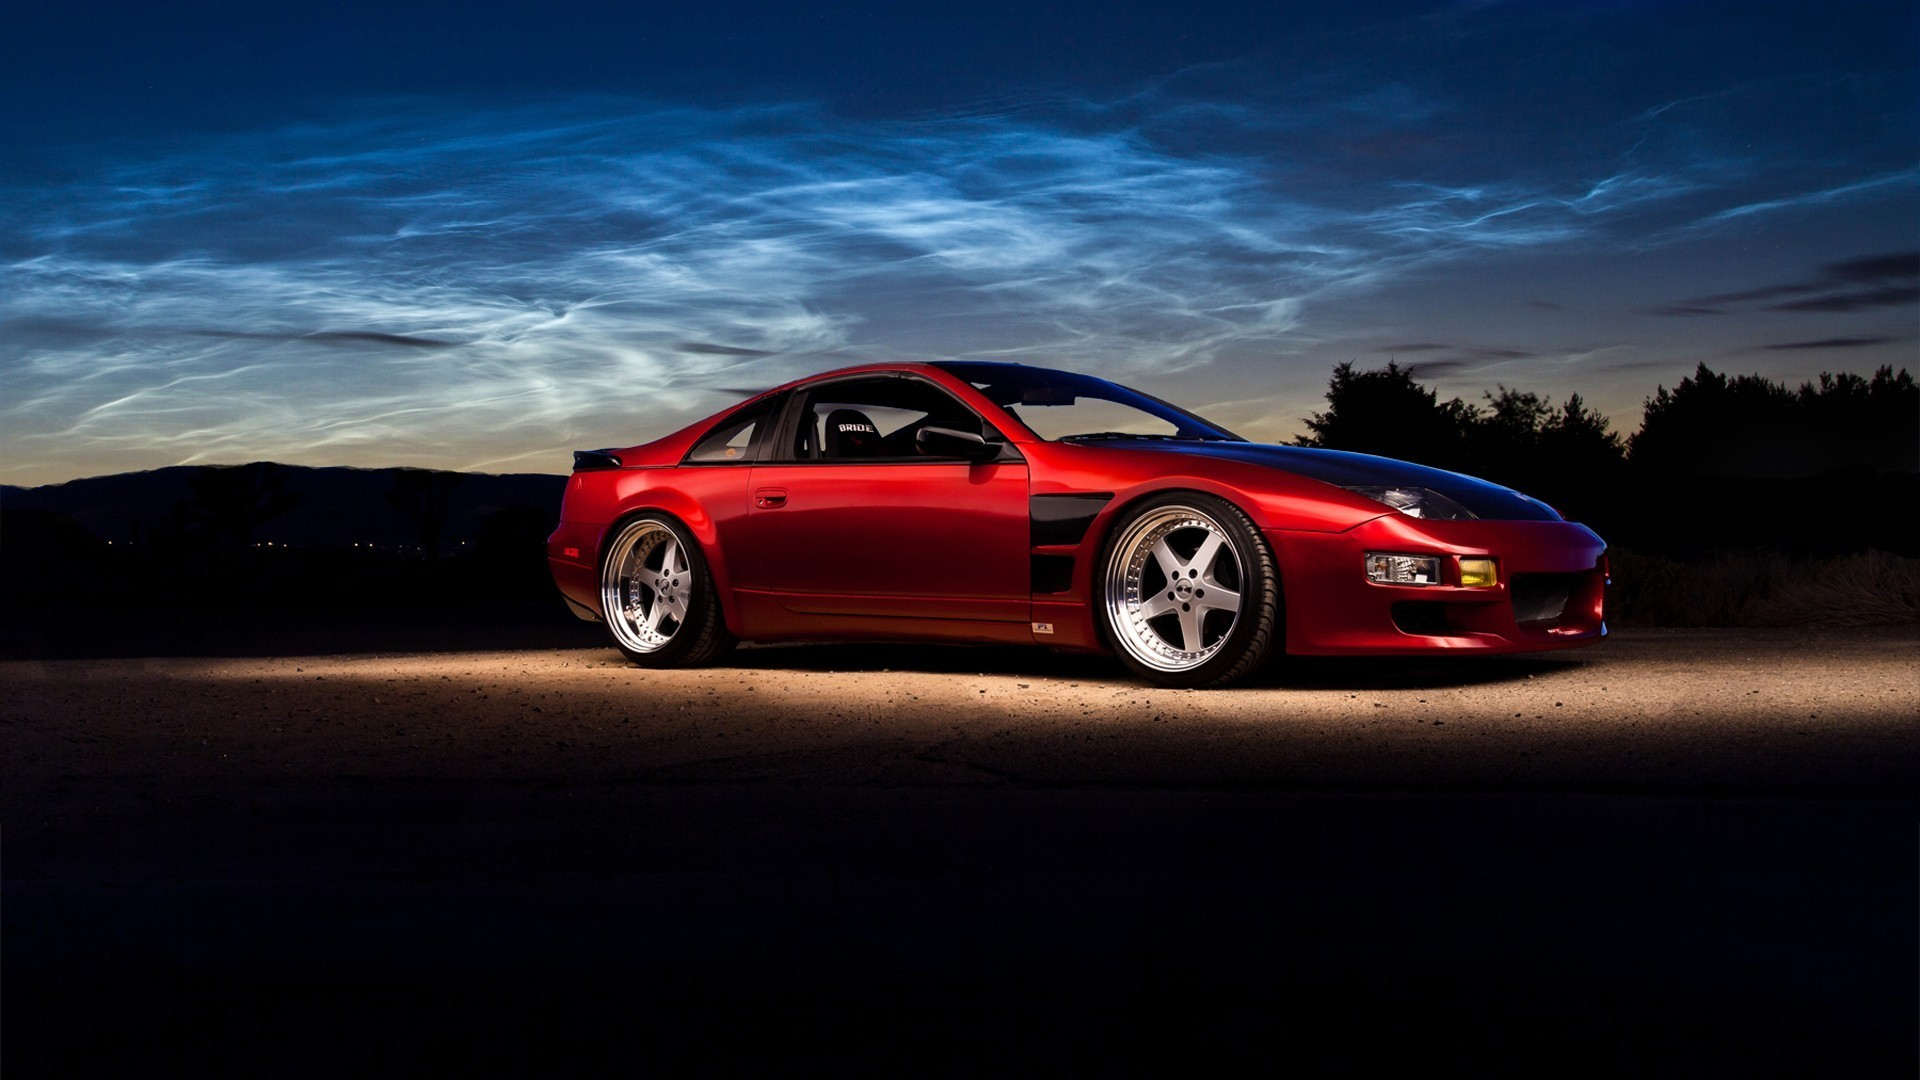 Super Cars 3d Wallpapers Nissan 300zx Nissan Jdm Wallpapers Hd Desktop And